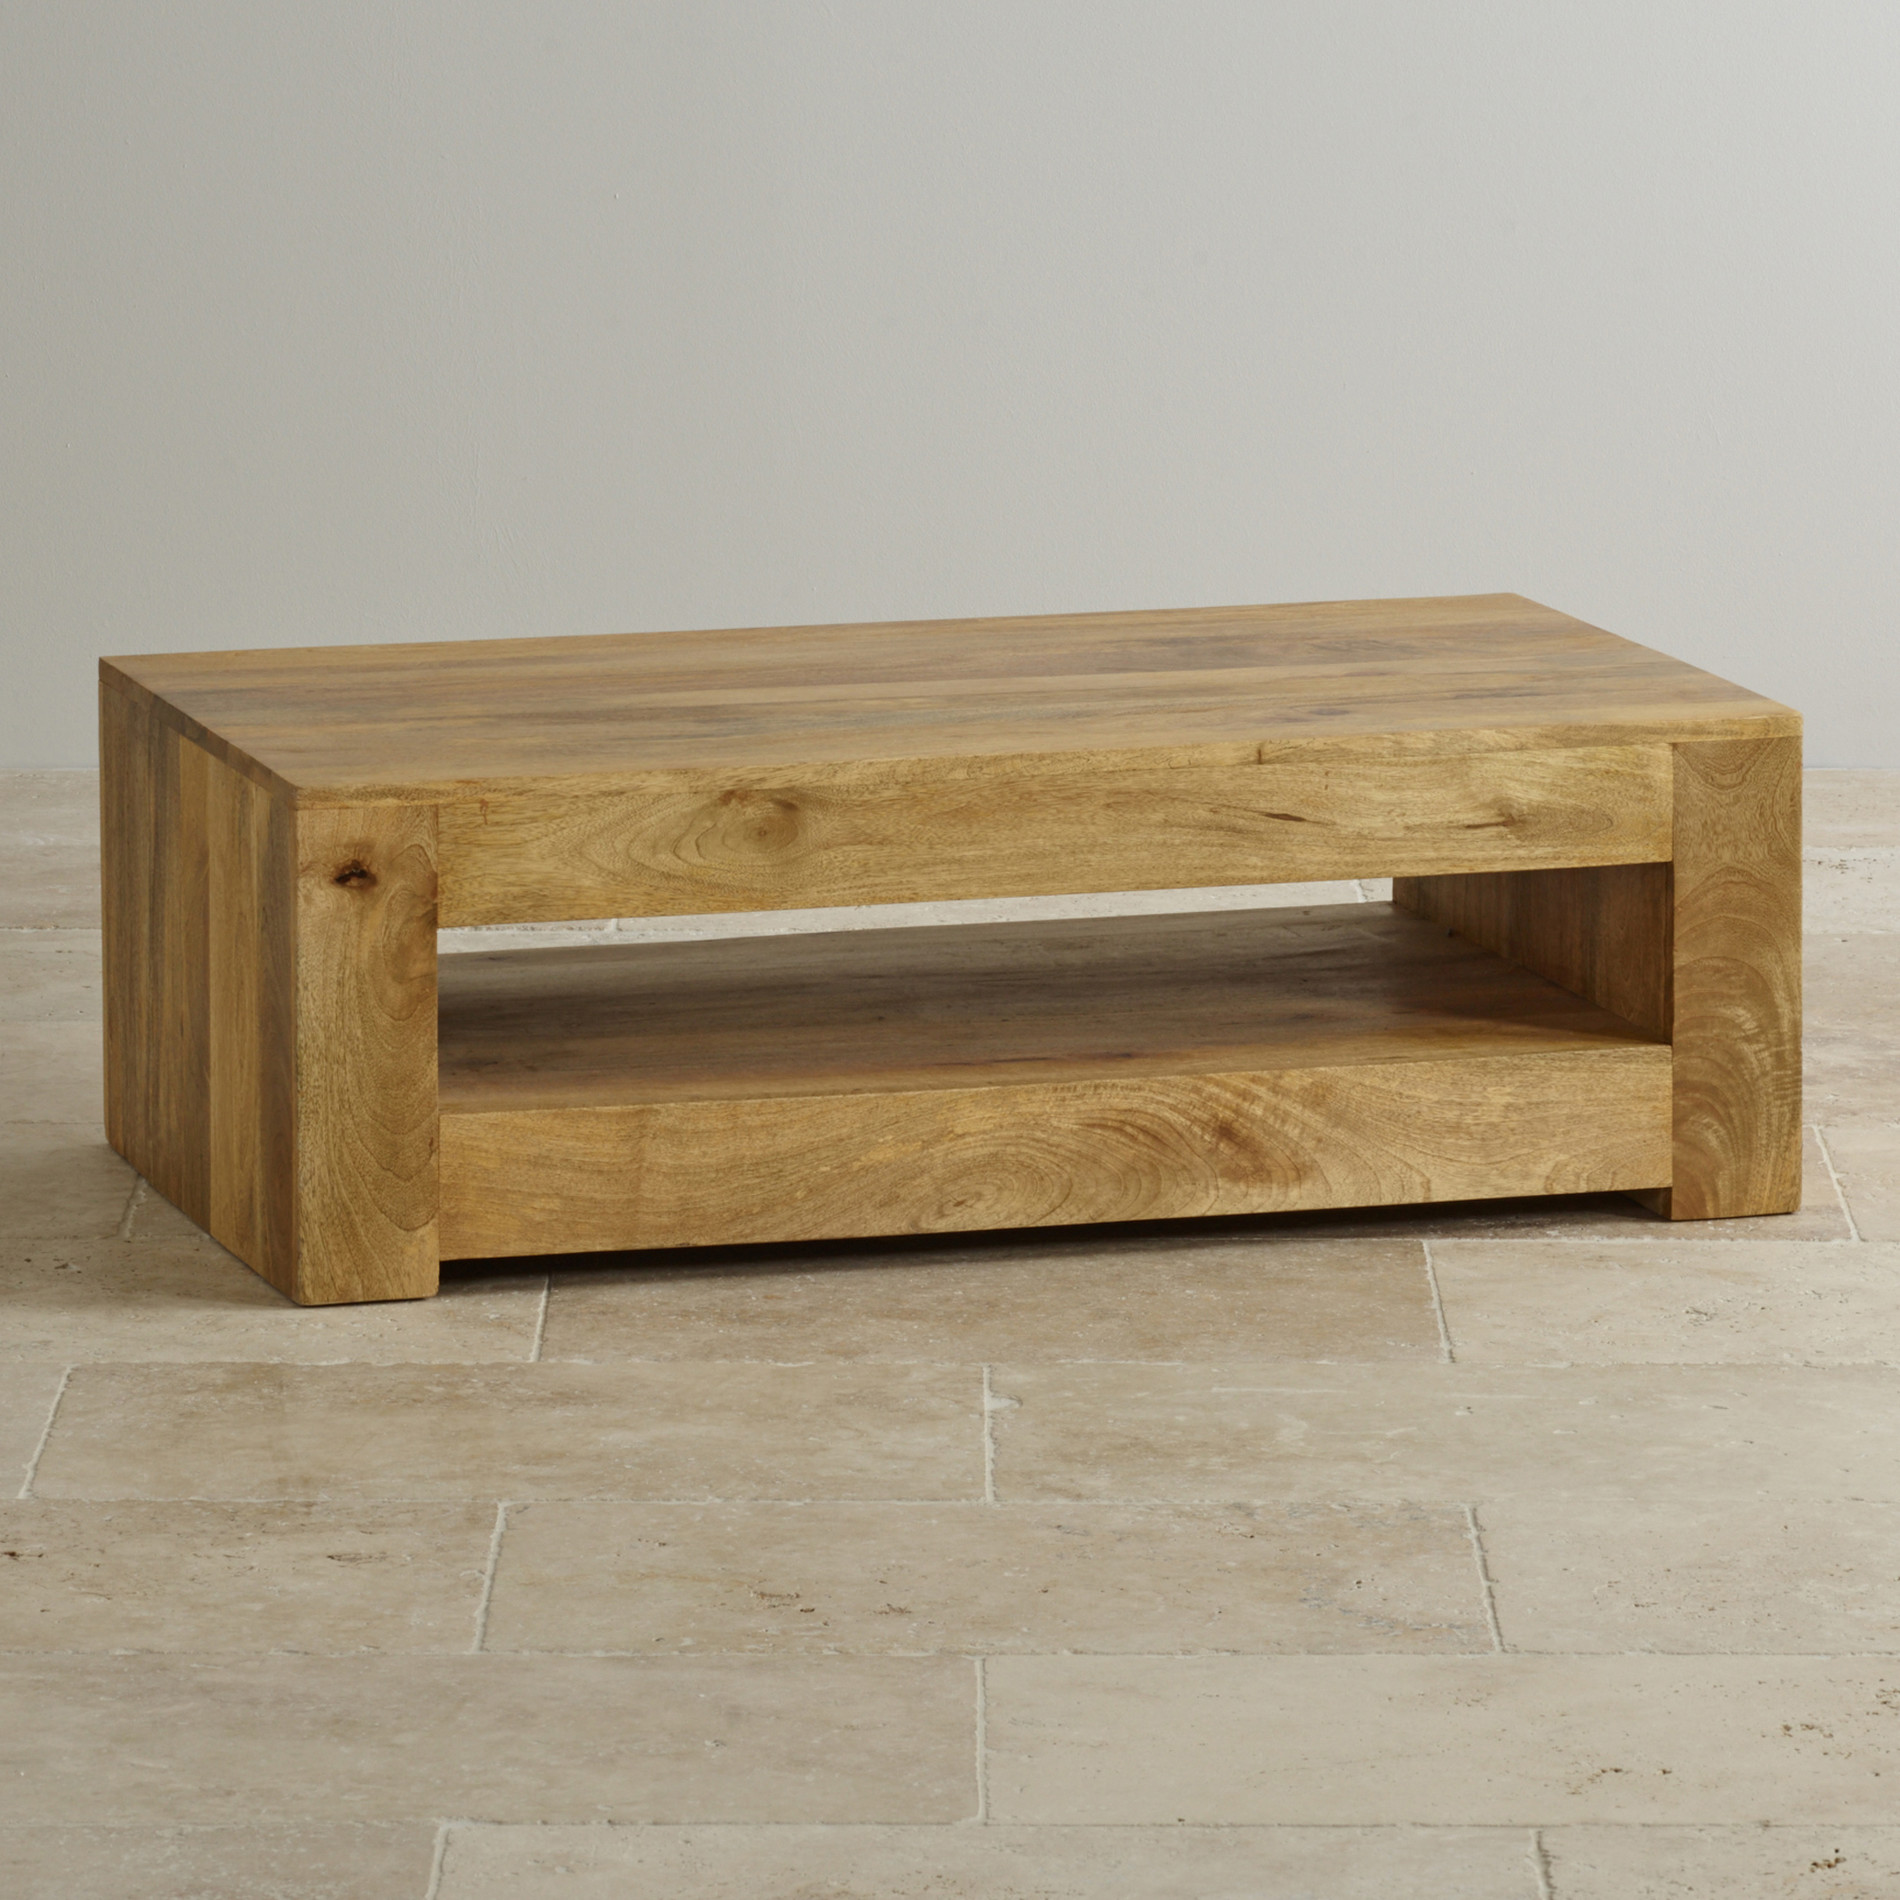 Mantis Light Coffee Table in Solid Mango